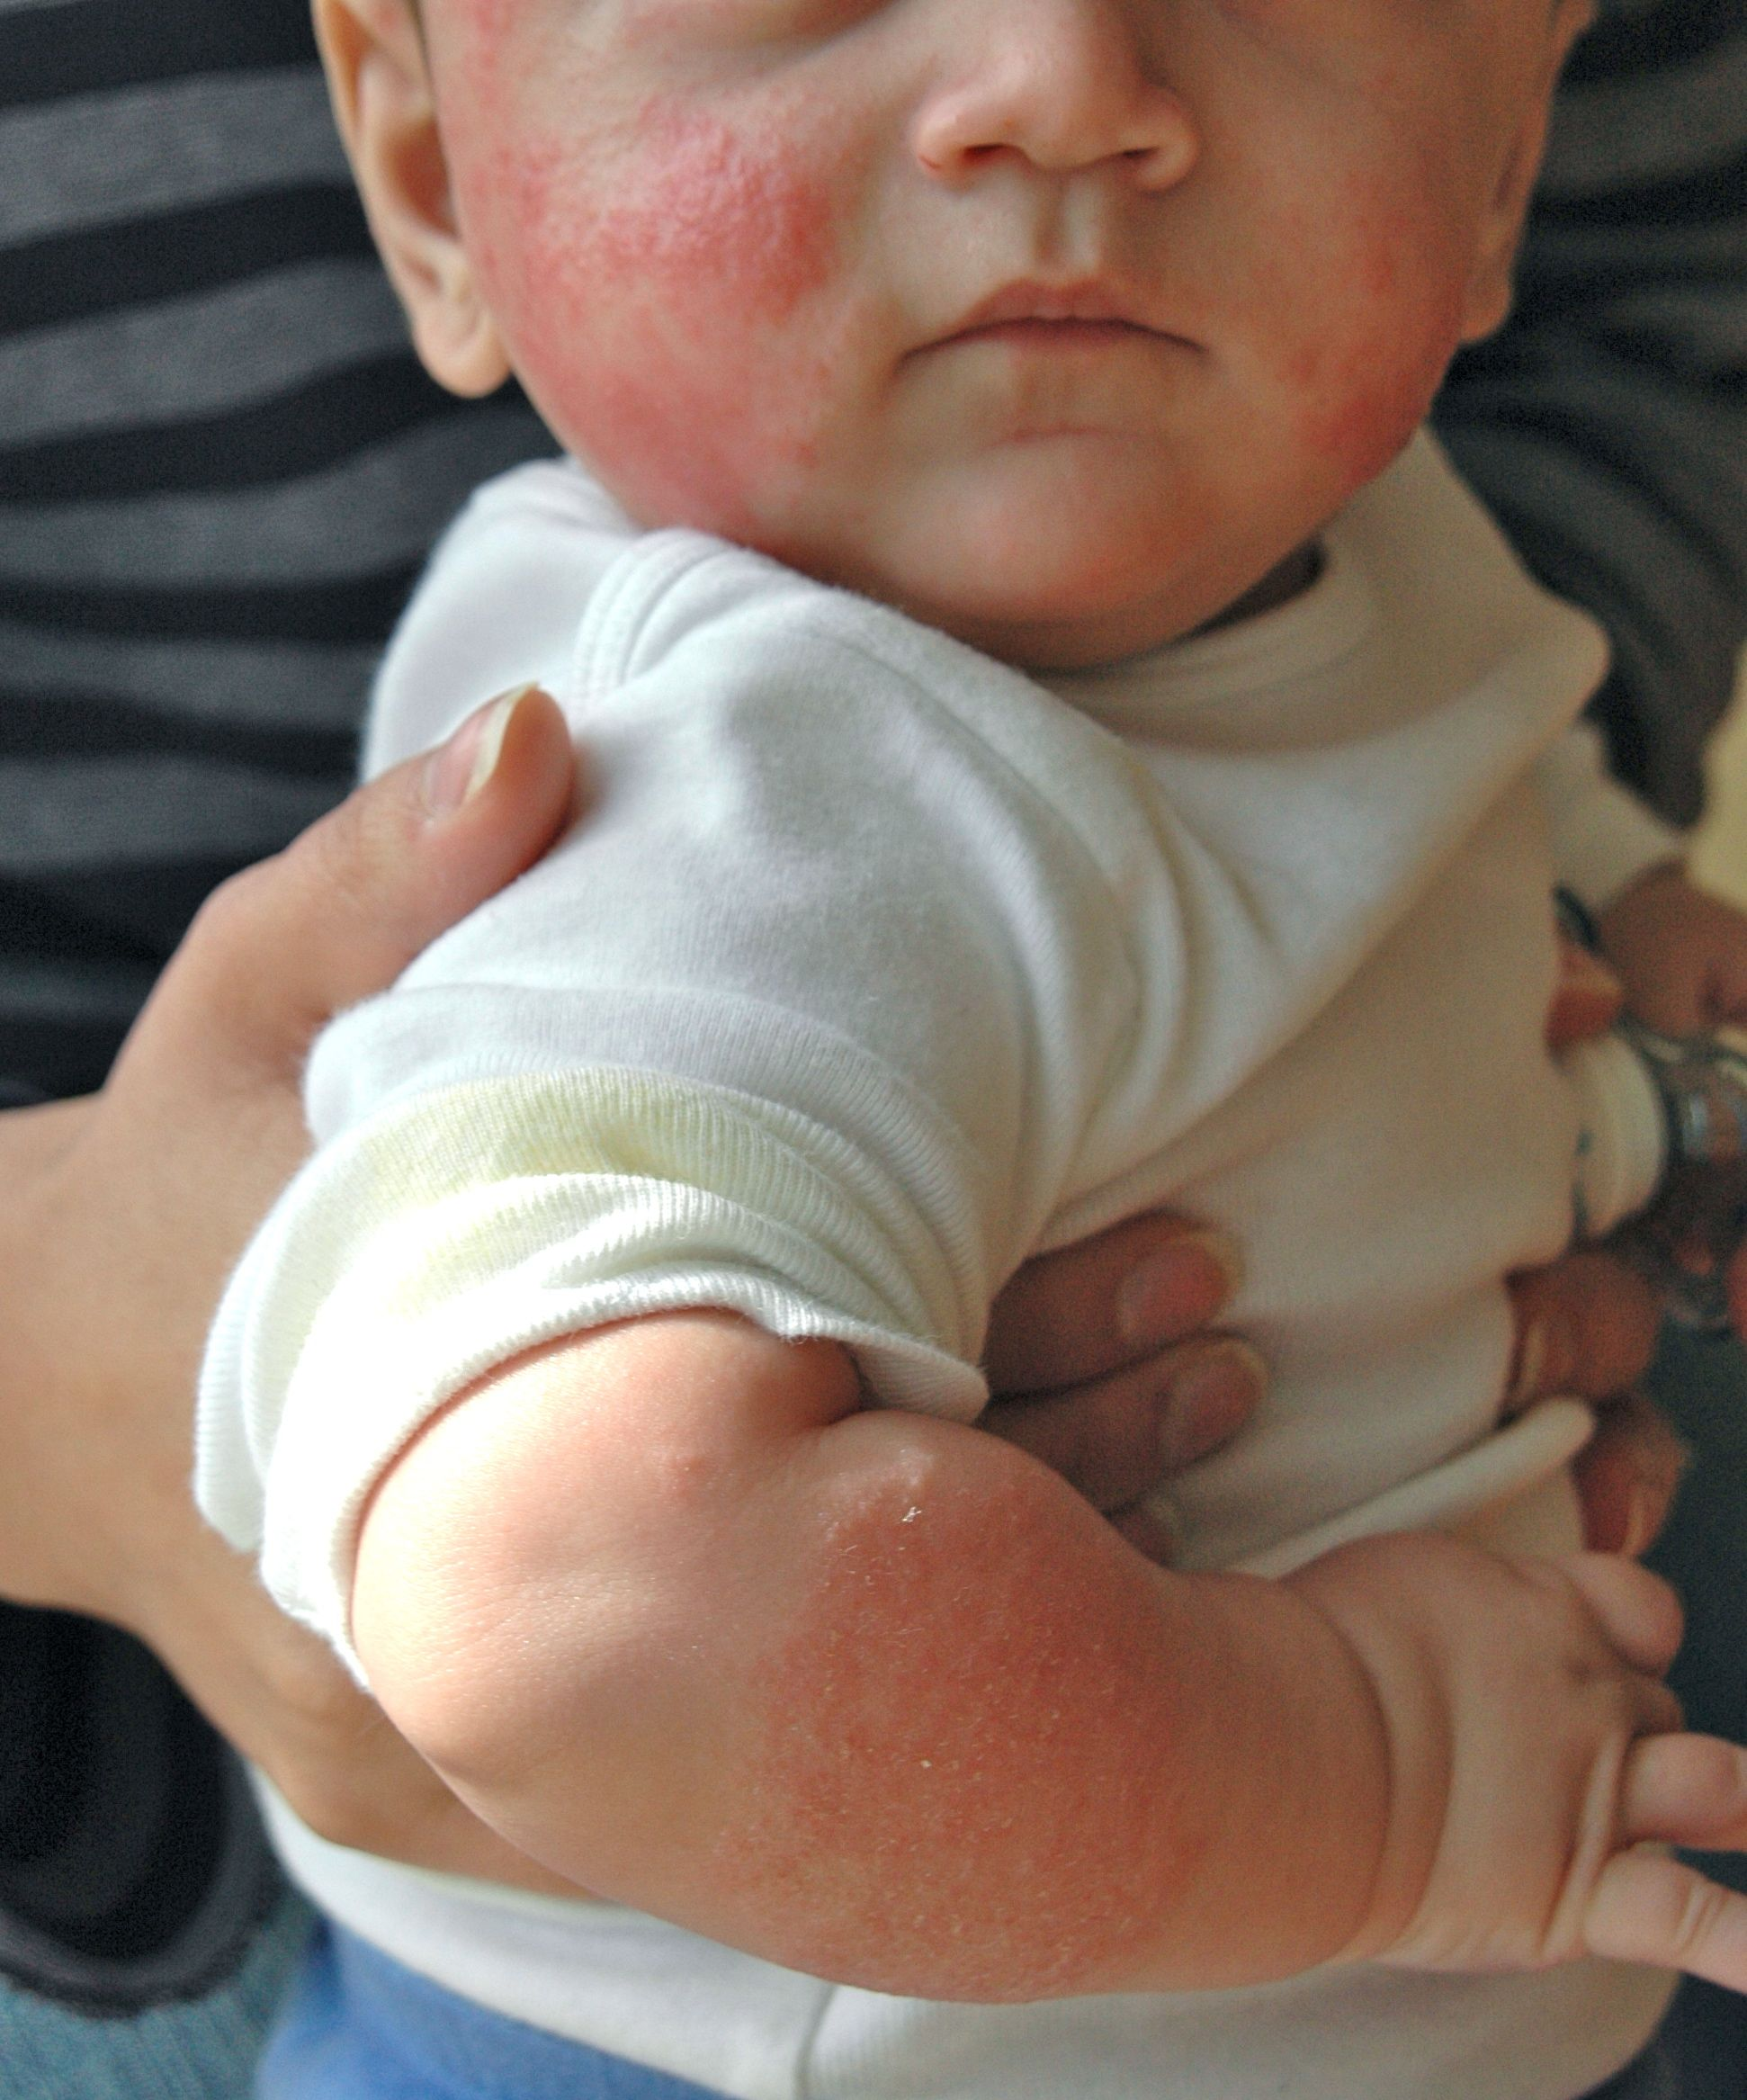 Allergies in newborns: how to manifest and what to do